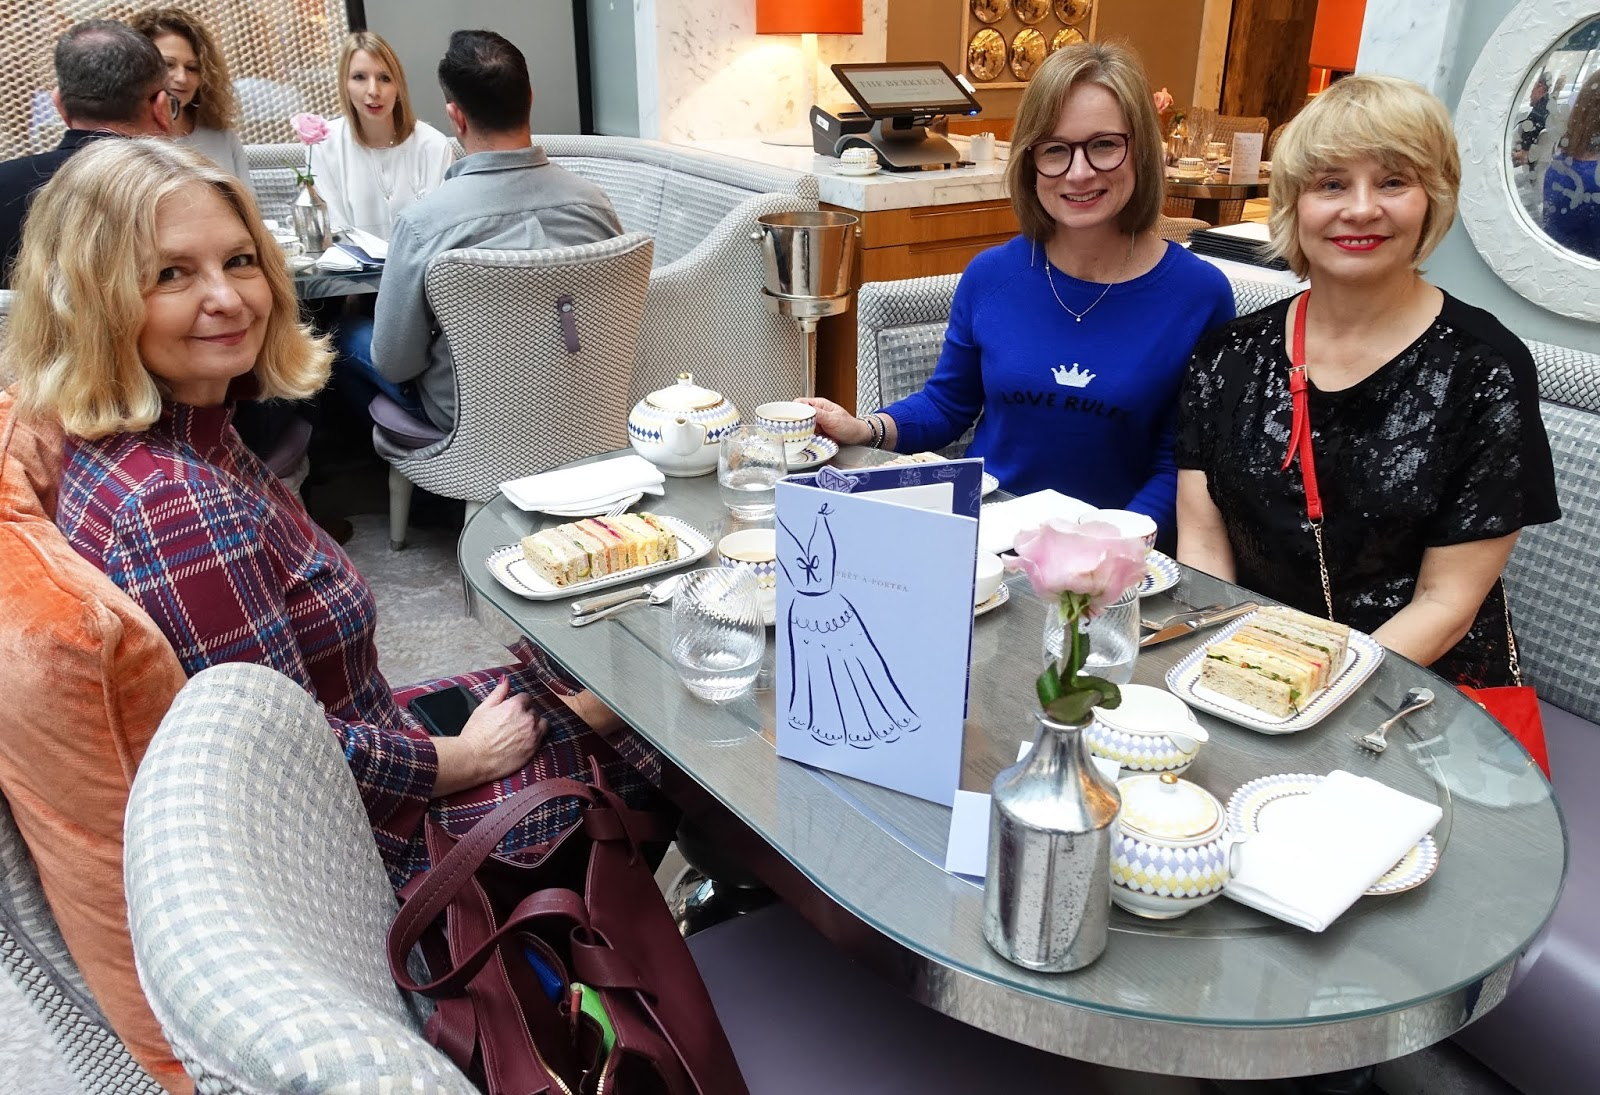 Over-50s fashion bloggers Anna from Mutton Style, Michelle from Fifty and Fabulous and Gail from Is This Mutton? enjoy afternoon tea at the Berkeley Hotel in London